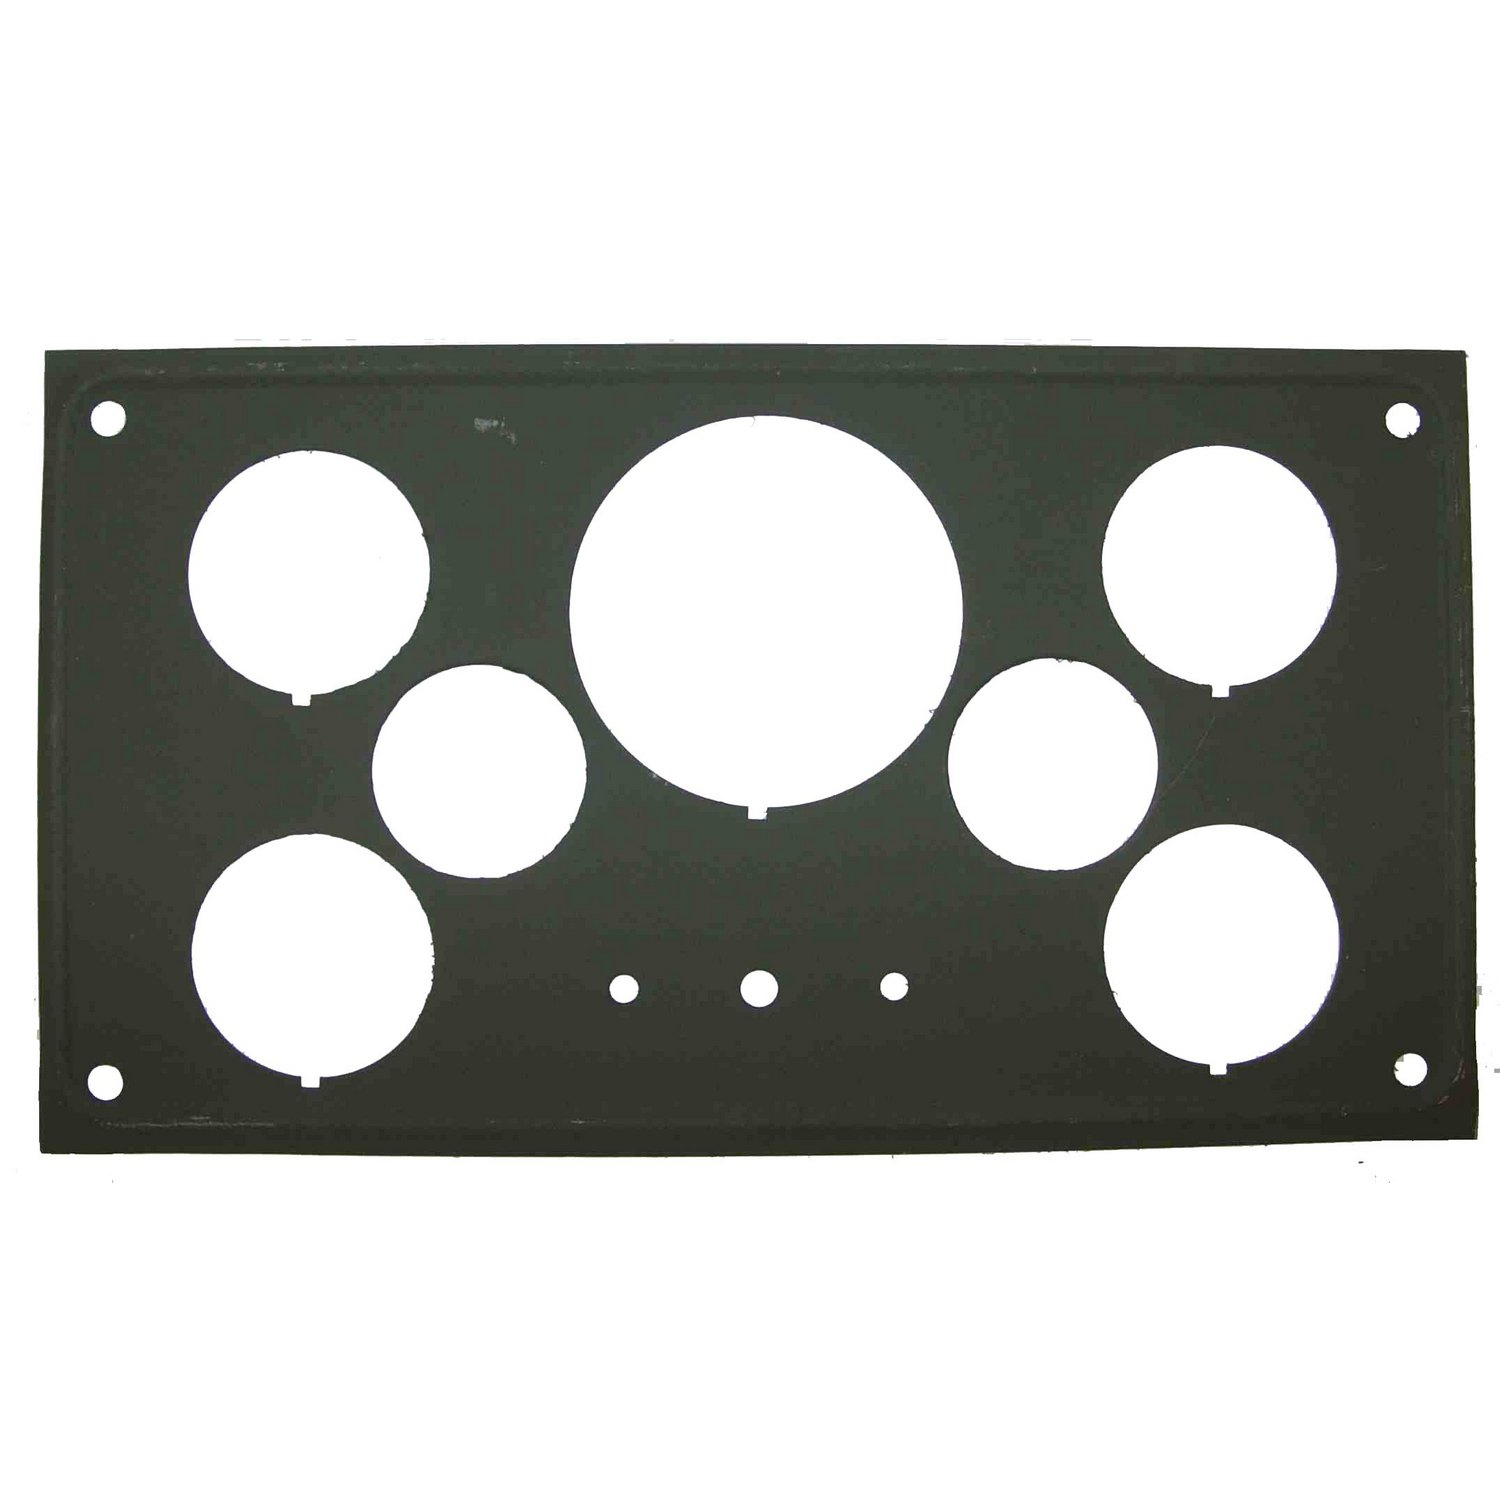 Instrument Cluster Backing Plate